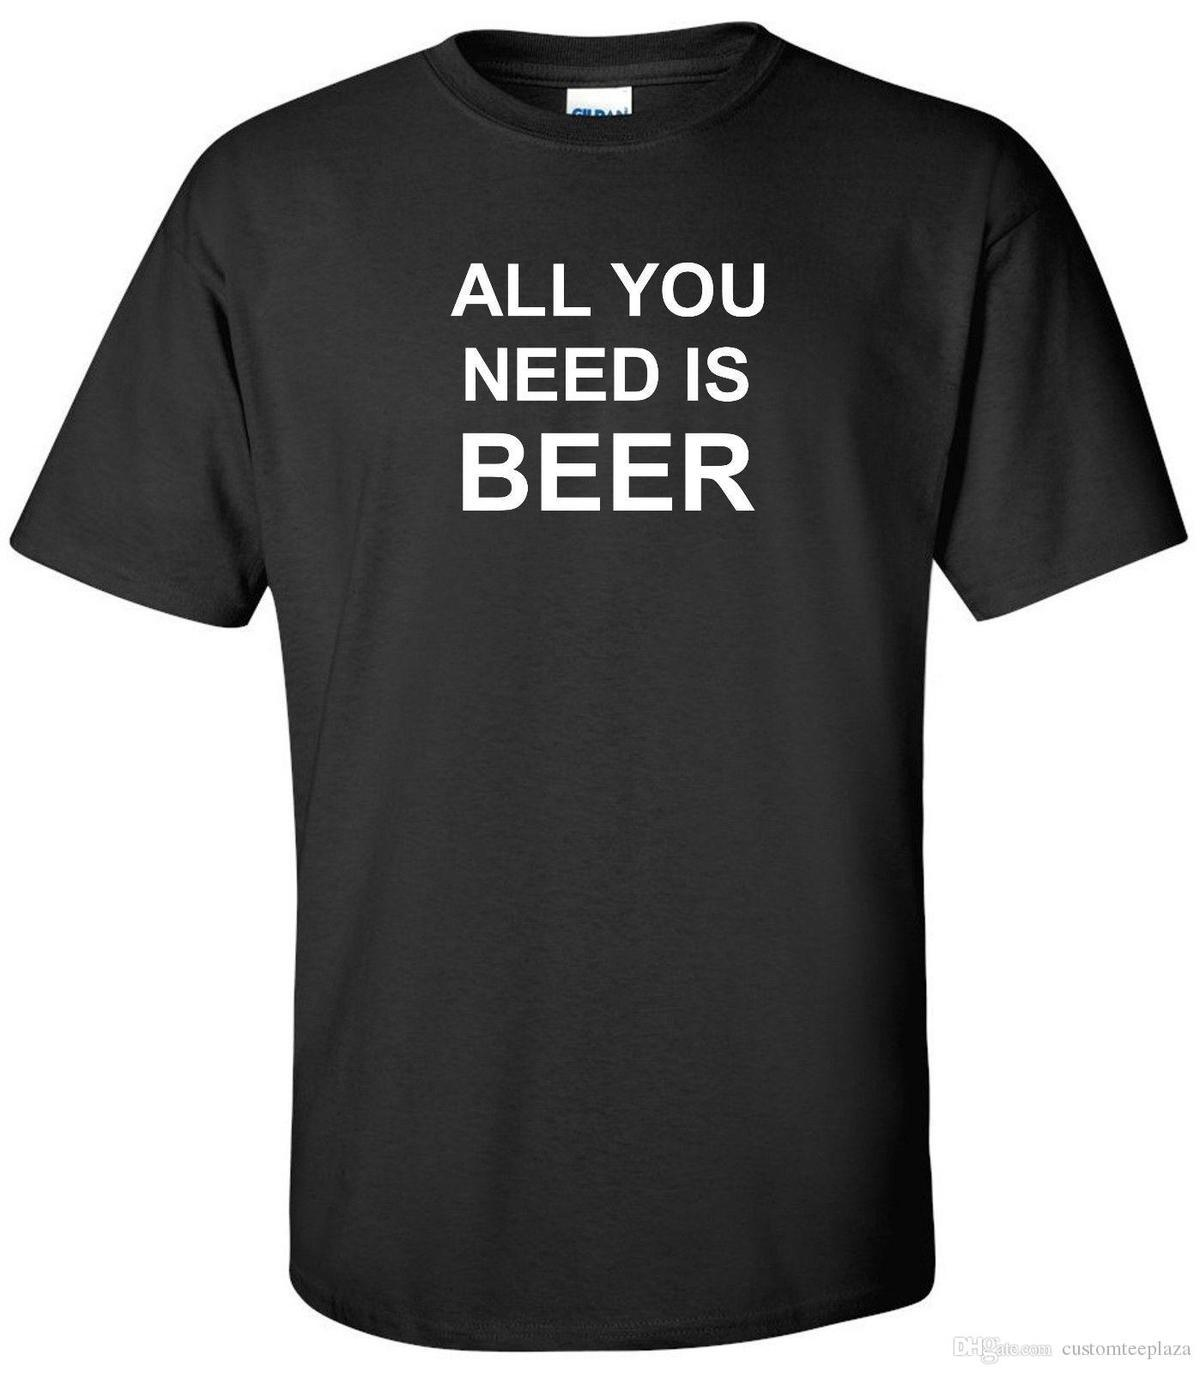 d9460b2d5 All You Need Is Beer T Shirt Drinking Humor Funny Party College Tee Shirt  Shirt T Shirt Men Man'S Premium White Short Sleeve Rude T Shirts Shirt  Online From ...